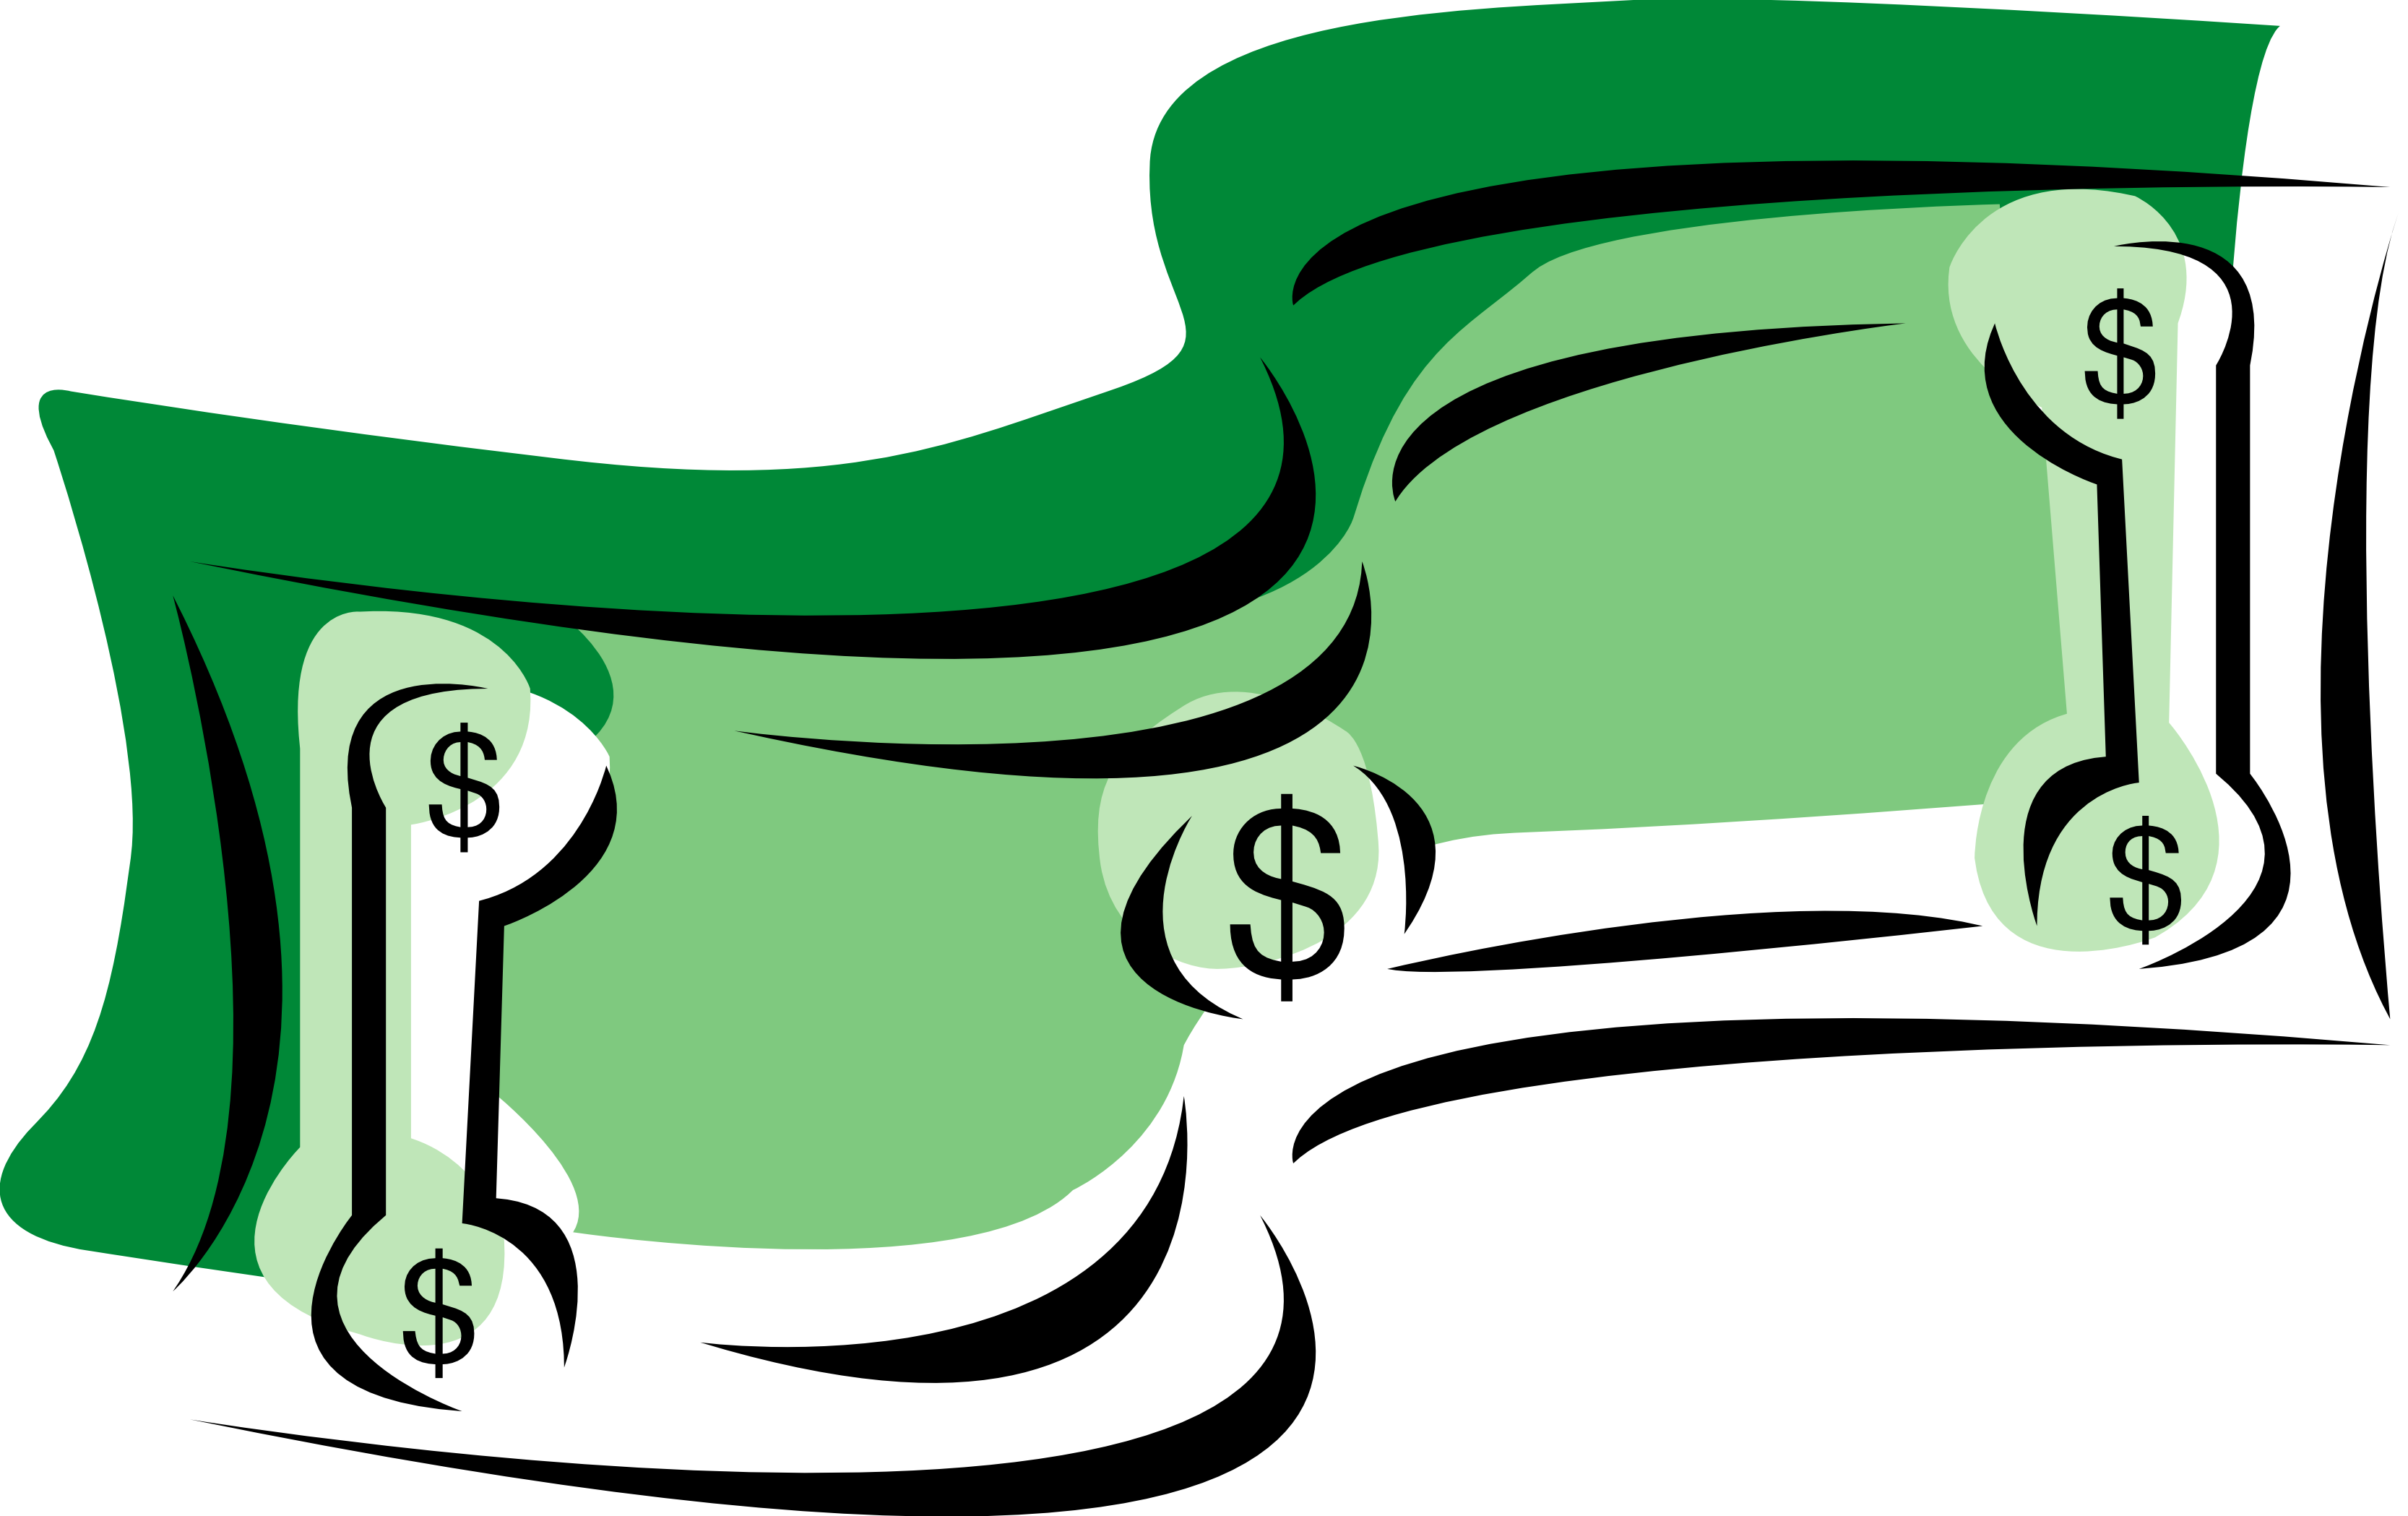 10 dollar money clipart clip black and white library 10 dollar bill clipart clipart images gallery for free download ... clip black and white library